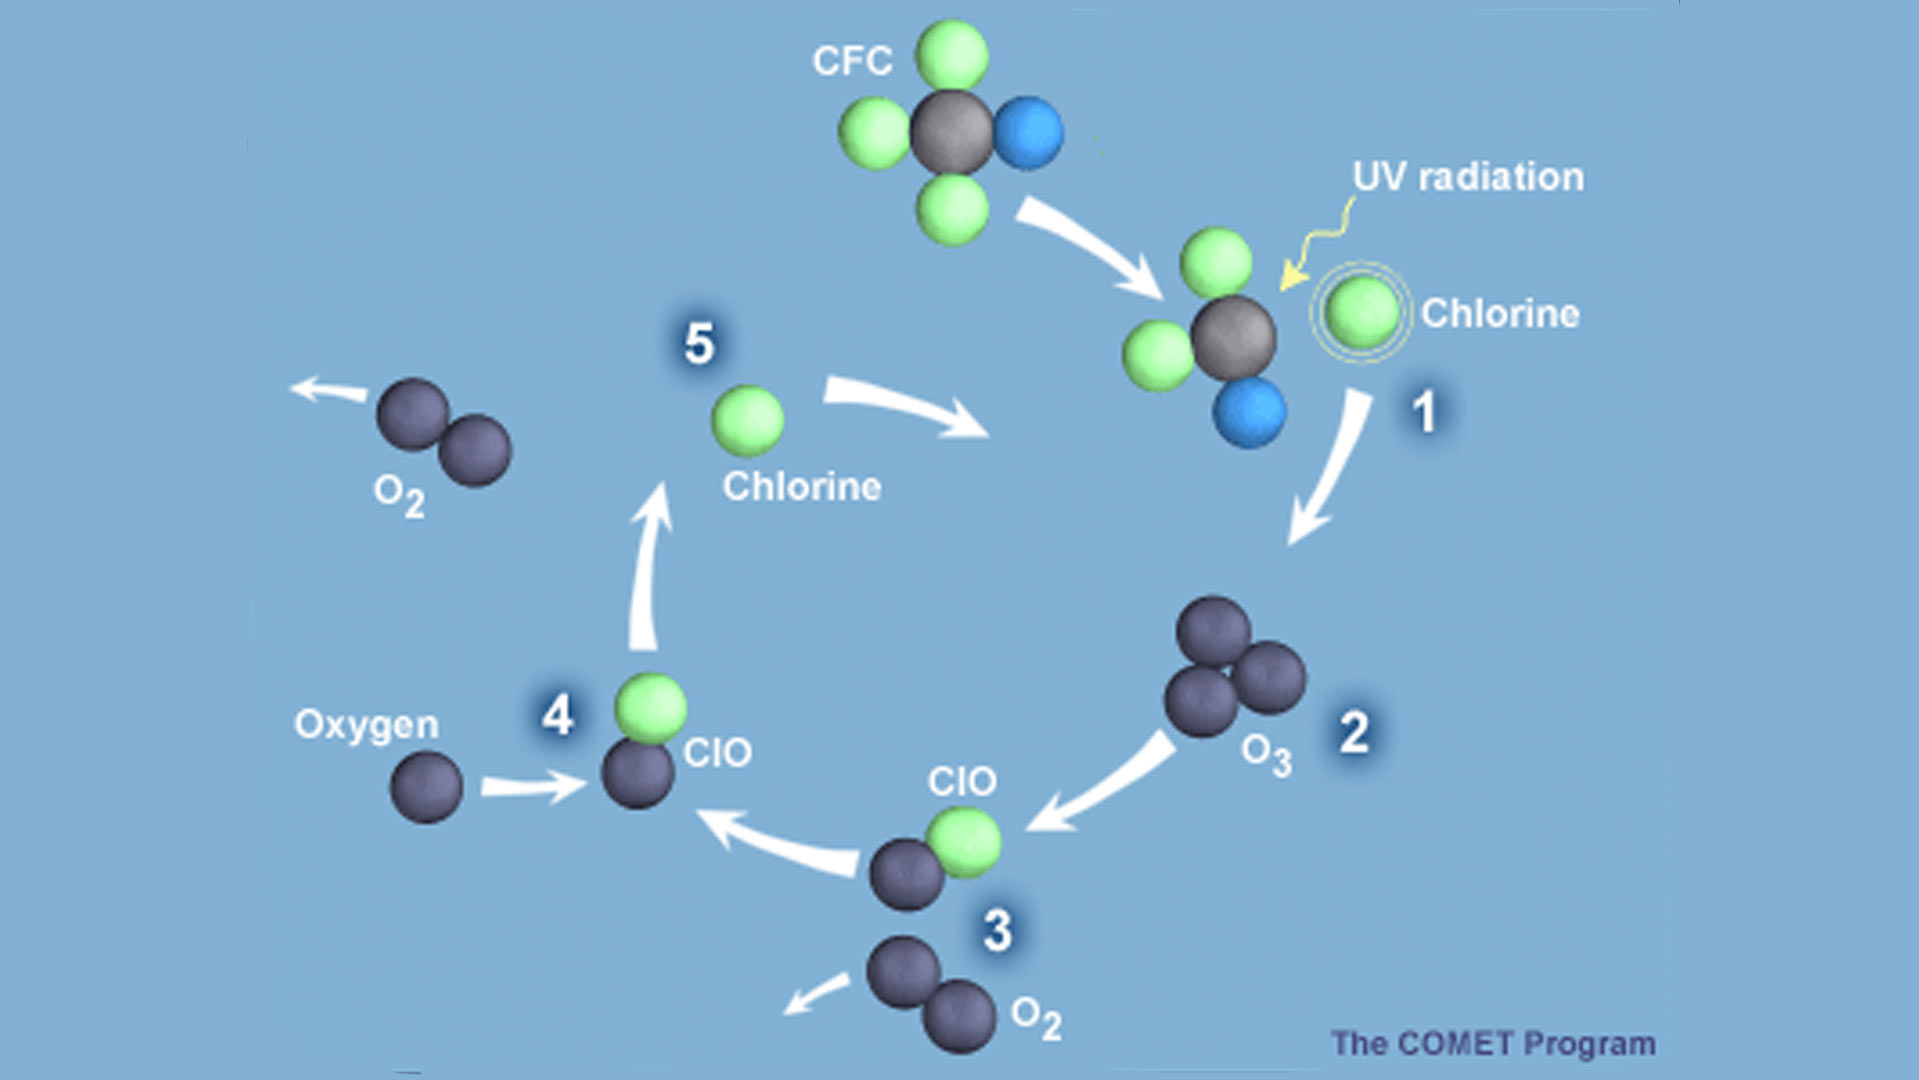 Once in the atmosphere, CFCs drift slowly upward to the stratosphere, where they are broken up by ultraviolet radiation, releasing the chlorine that catalytically destroys ozone. The destructive cycle of a chlorine atom is shown in the graphic.